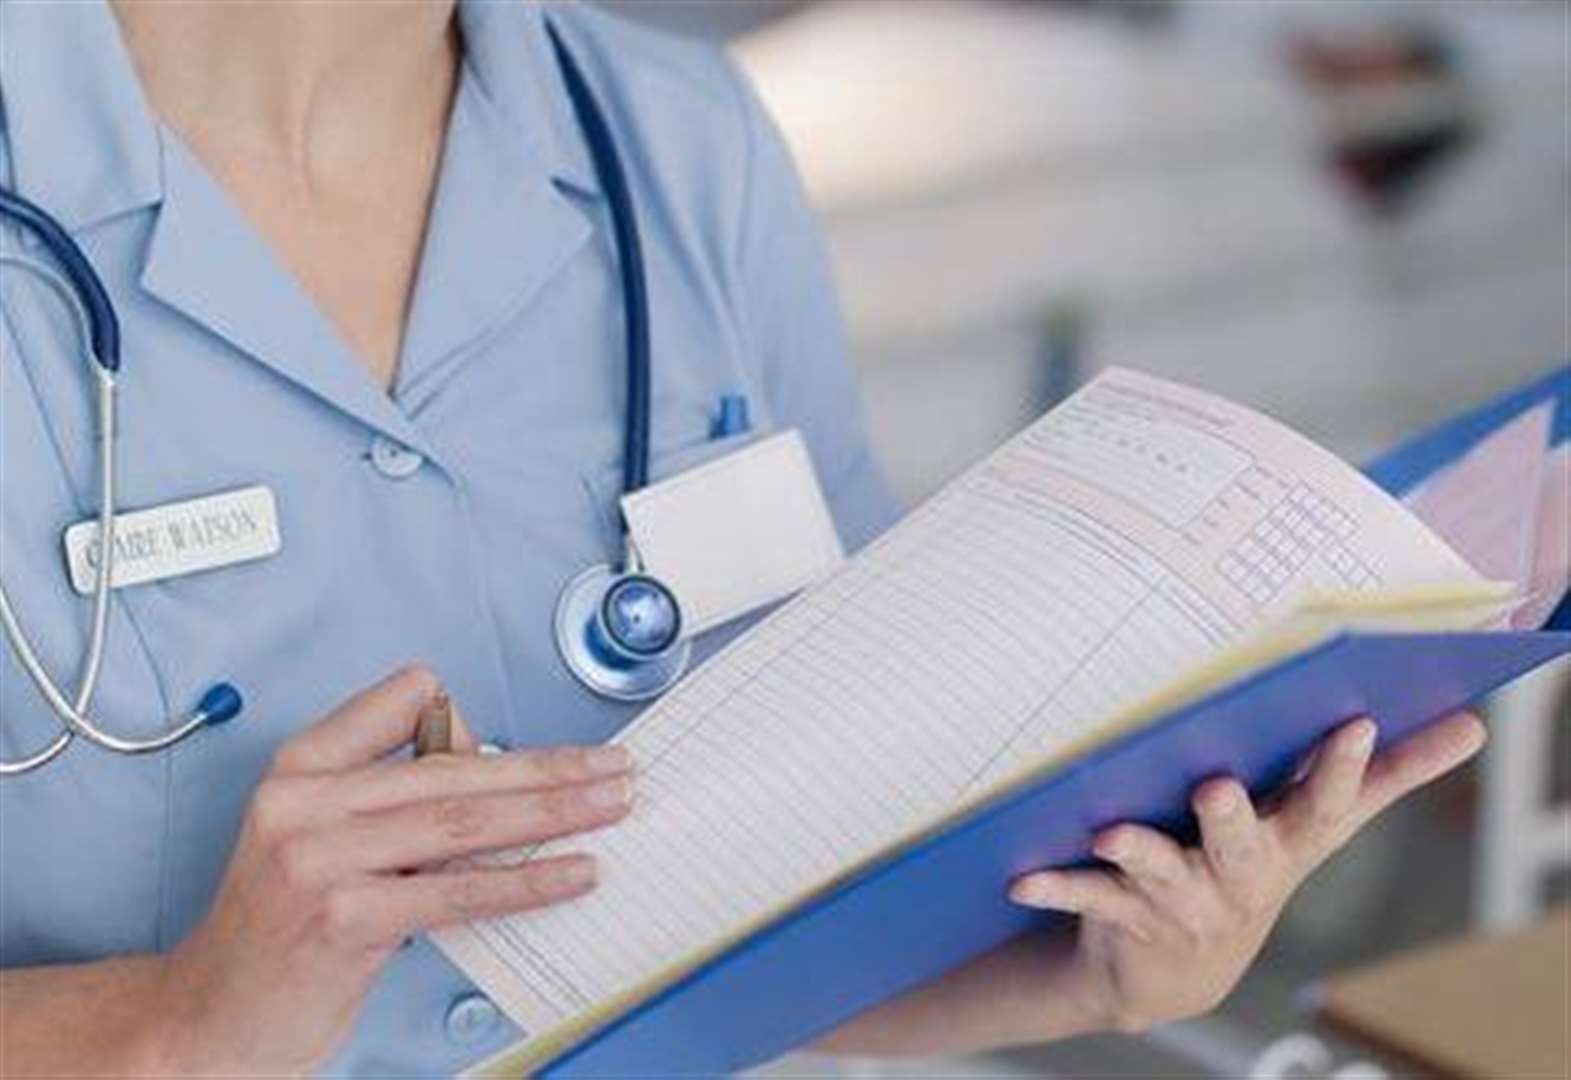 Mental health provider given 'good' inspection rating